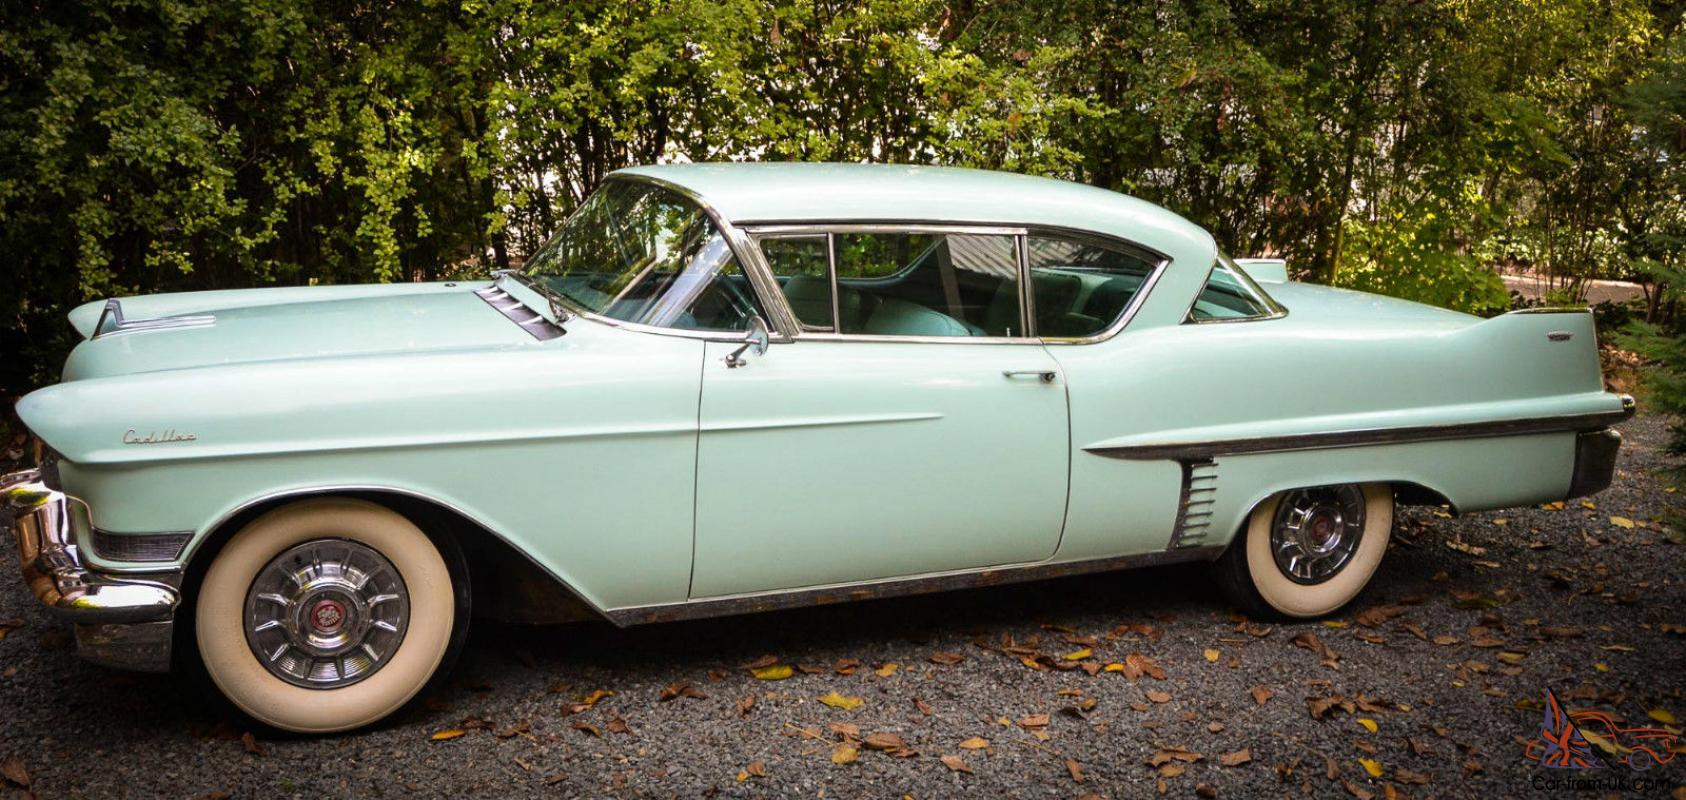 Cadillac deville 2 door hardtop for 1957 cadillac 2 door hardtop